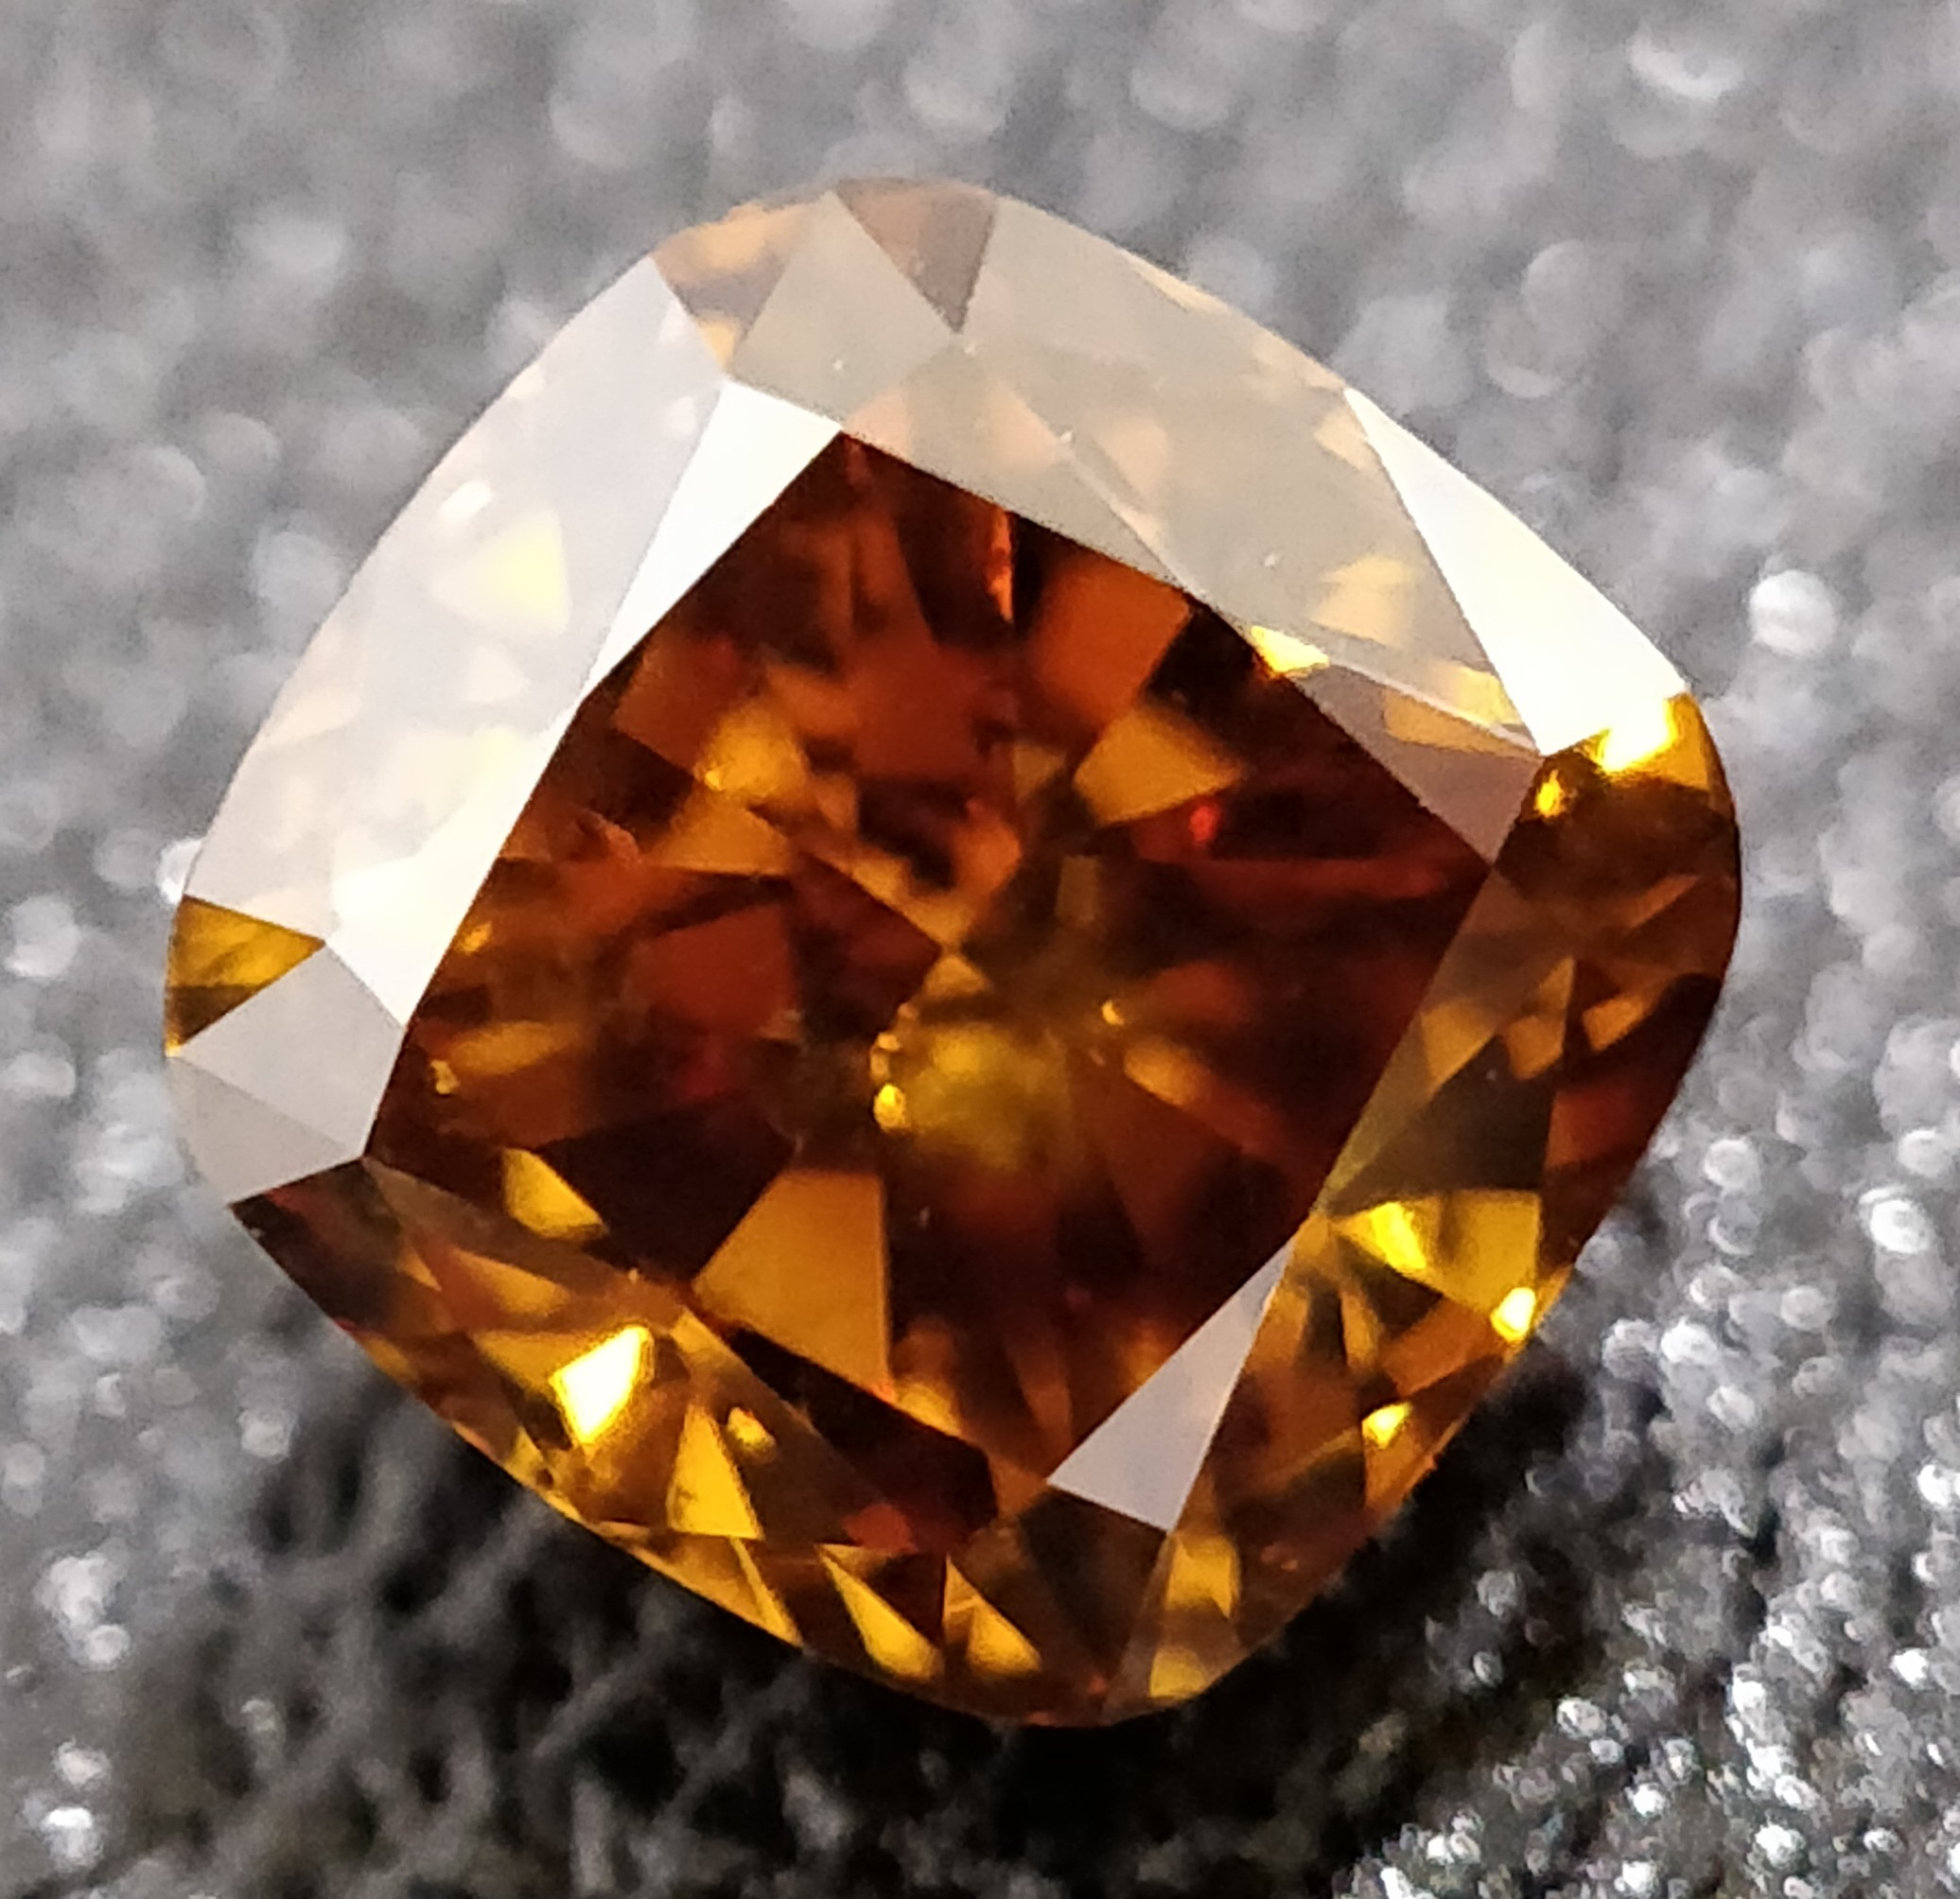 Cushion Cut 0.770 Carat Orange Color Si2 Clarity Sku 1325906937